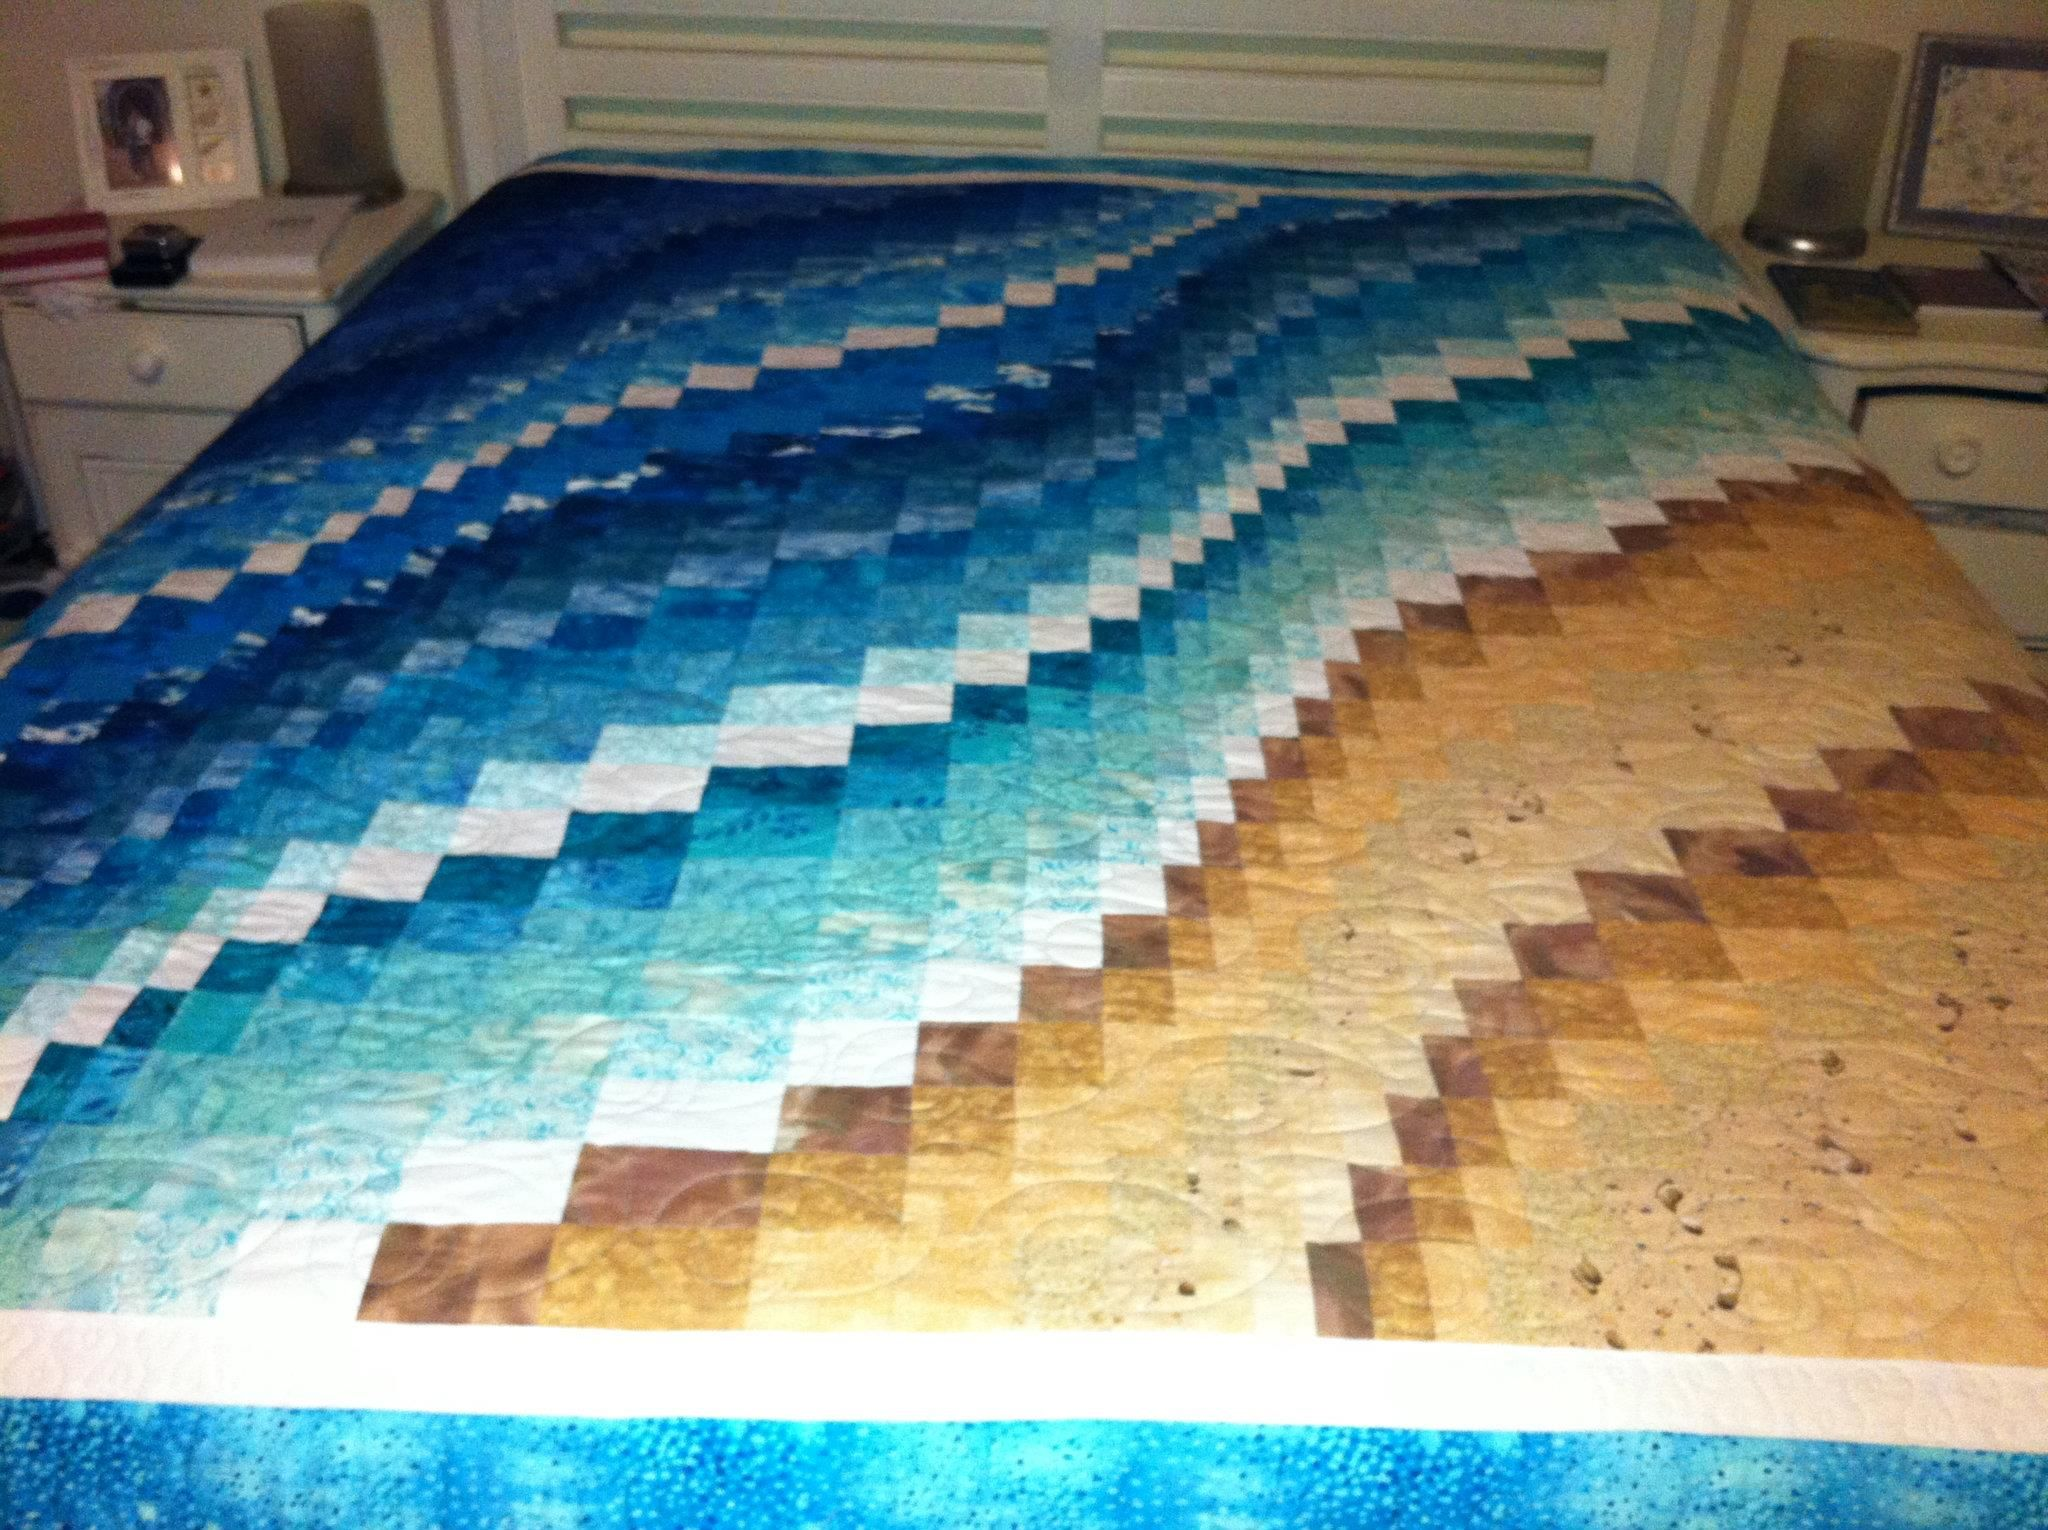 Pin By Karen Douglas On Quilty Pleasures Bargello Quilt Patterns Beach Themed Quilts Quilts